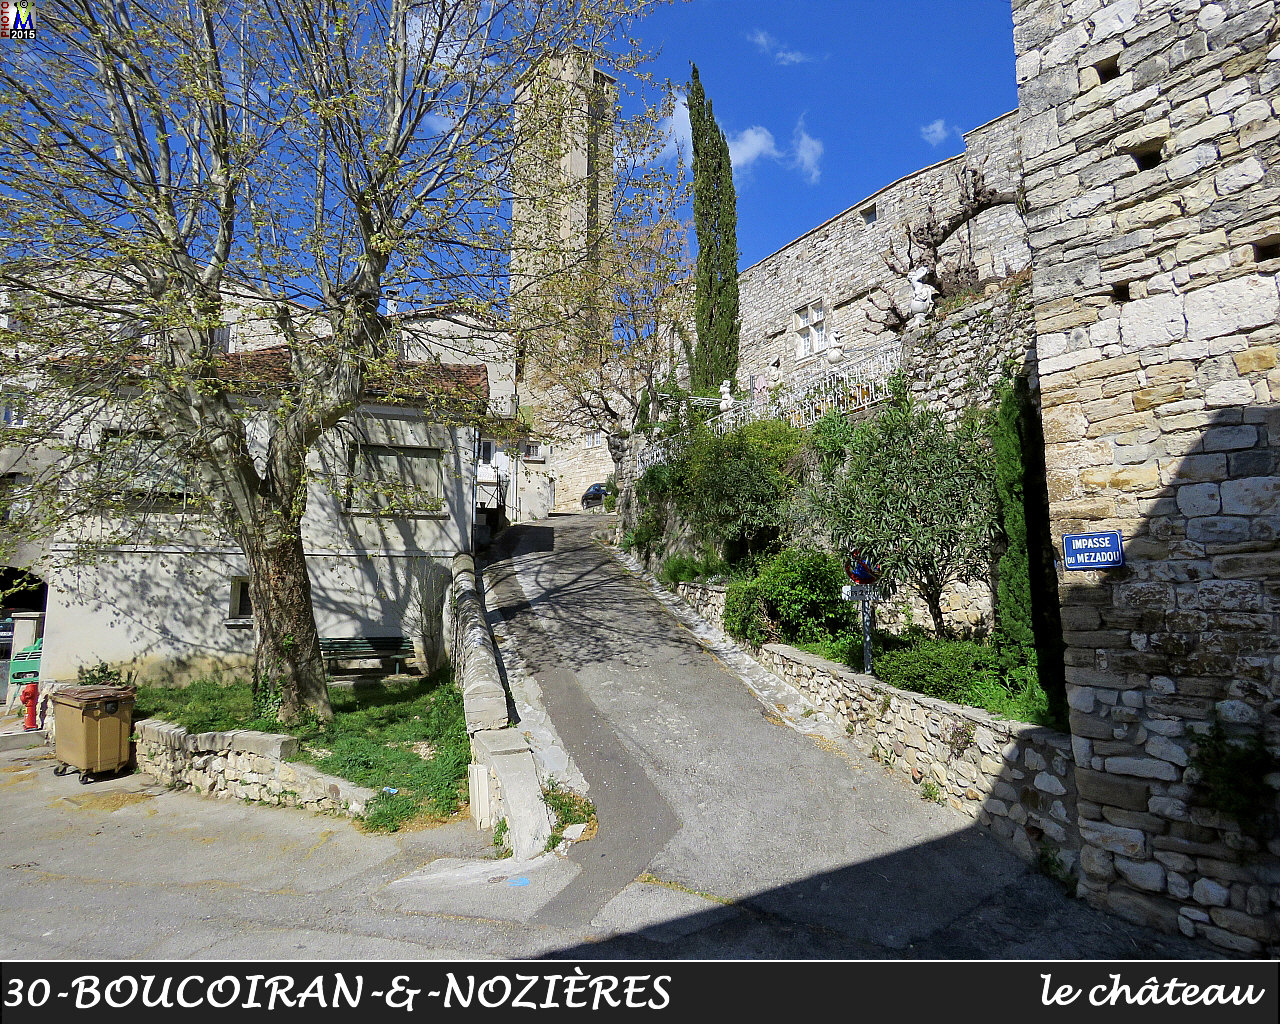 30BOUCOIRAN-NOZIERES_chateau_102.jpg